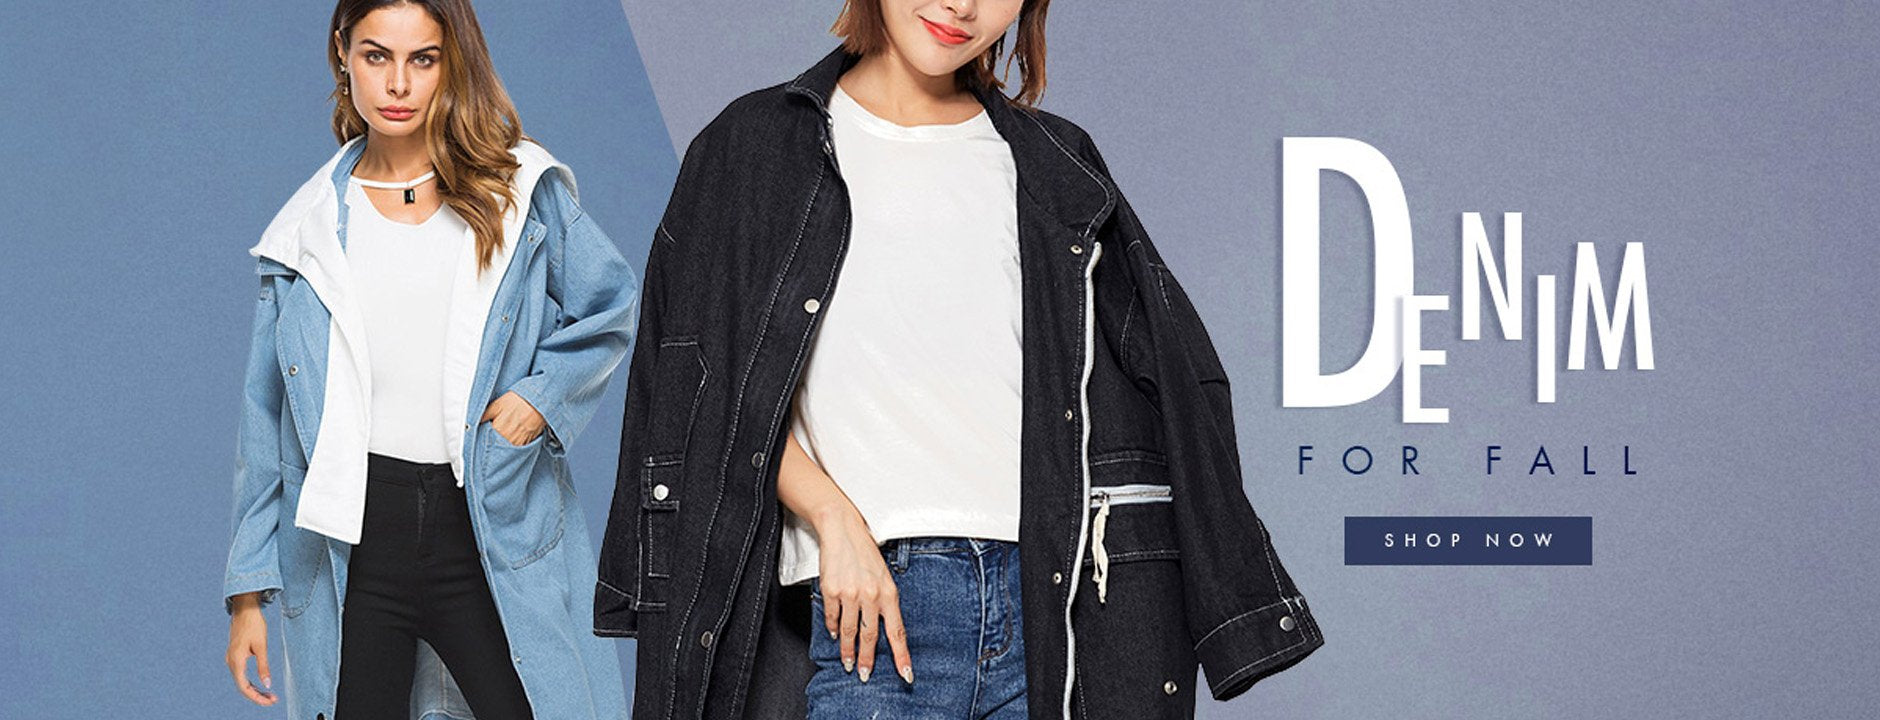 4b0aa486319b2 Fashion Chic Clothes Online, Discover Latest Fashion Trend – shechoic.com